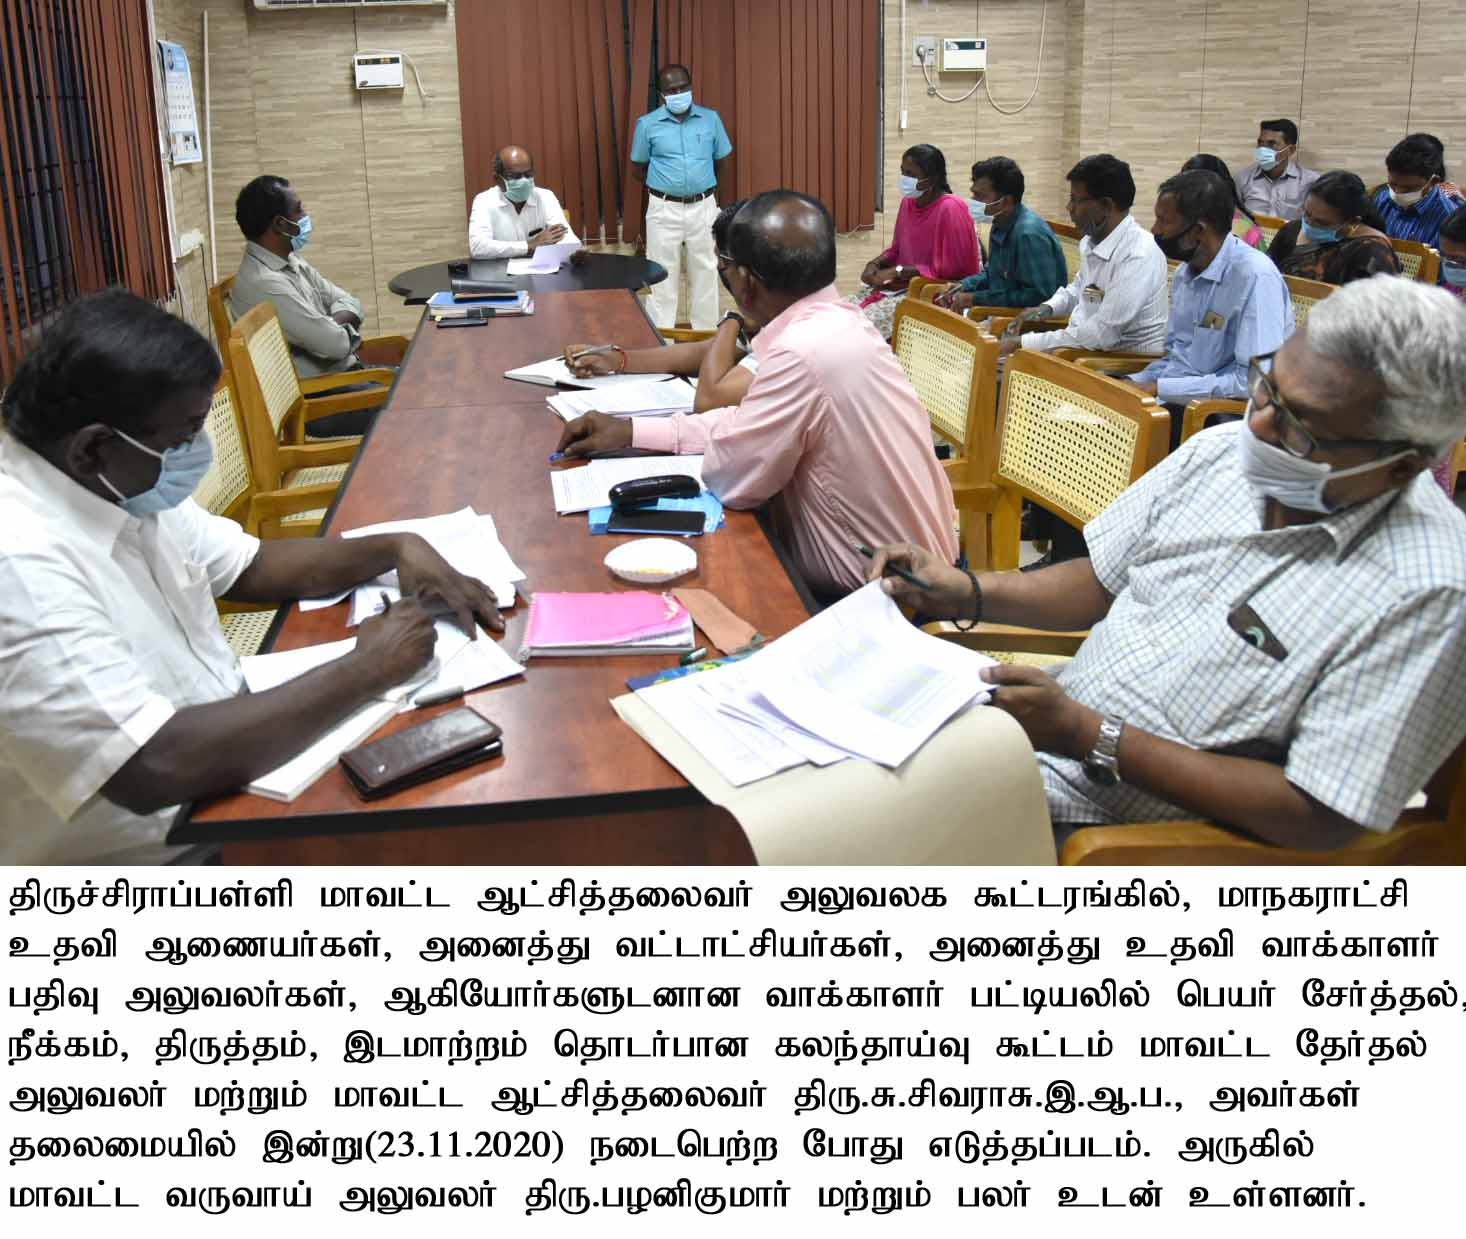 District Collector conducted Review meeting on Electoral Roll Spl. Summary Revision on 23.11.2020